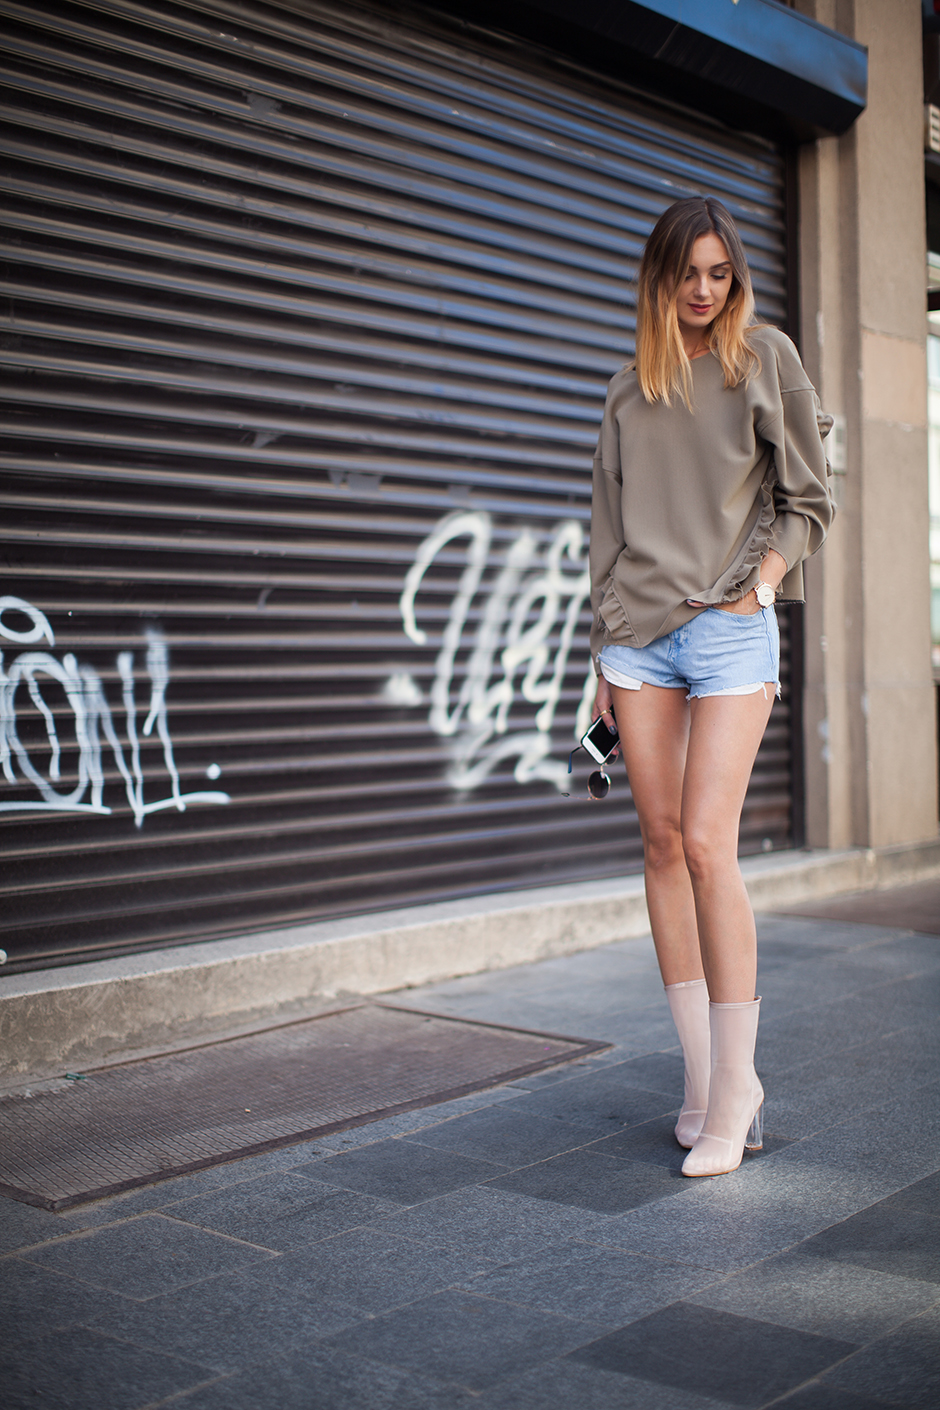 how-to-wear-denim-shorts-khaki-top-sweatshirt-mesh-boots-outfit